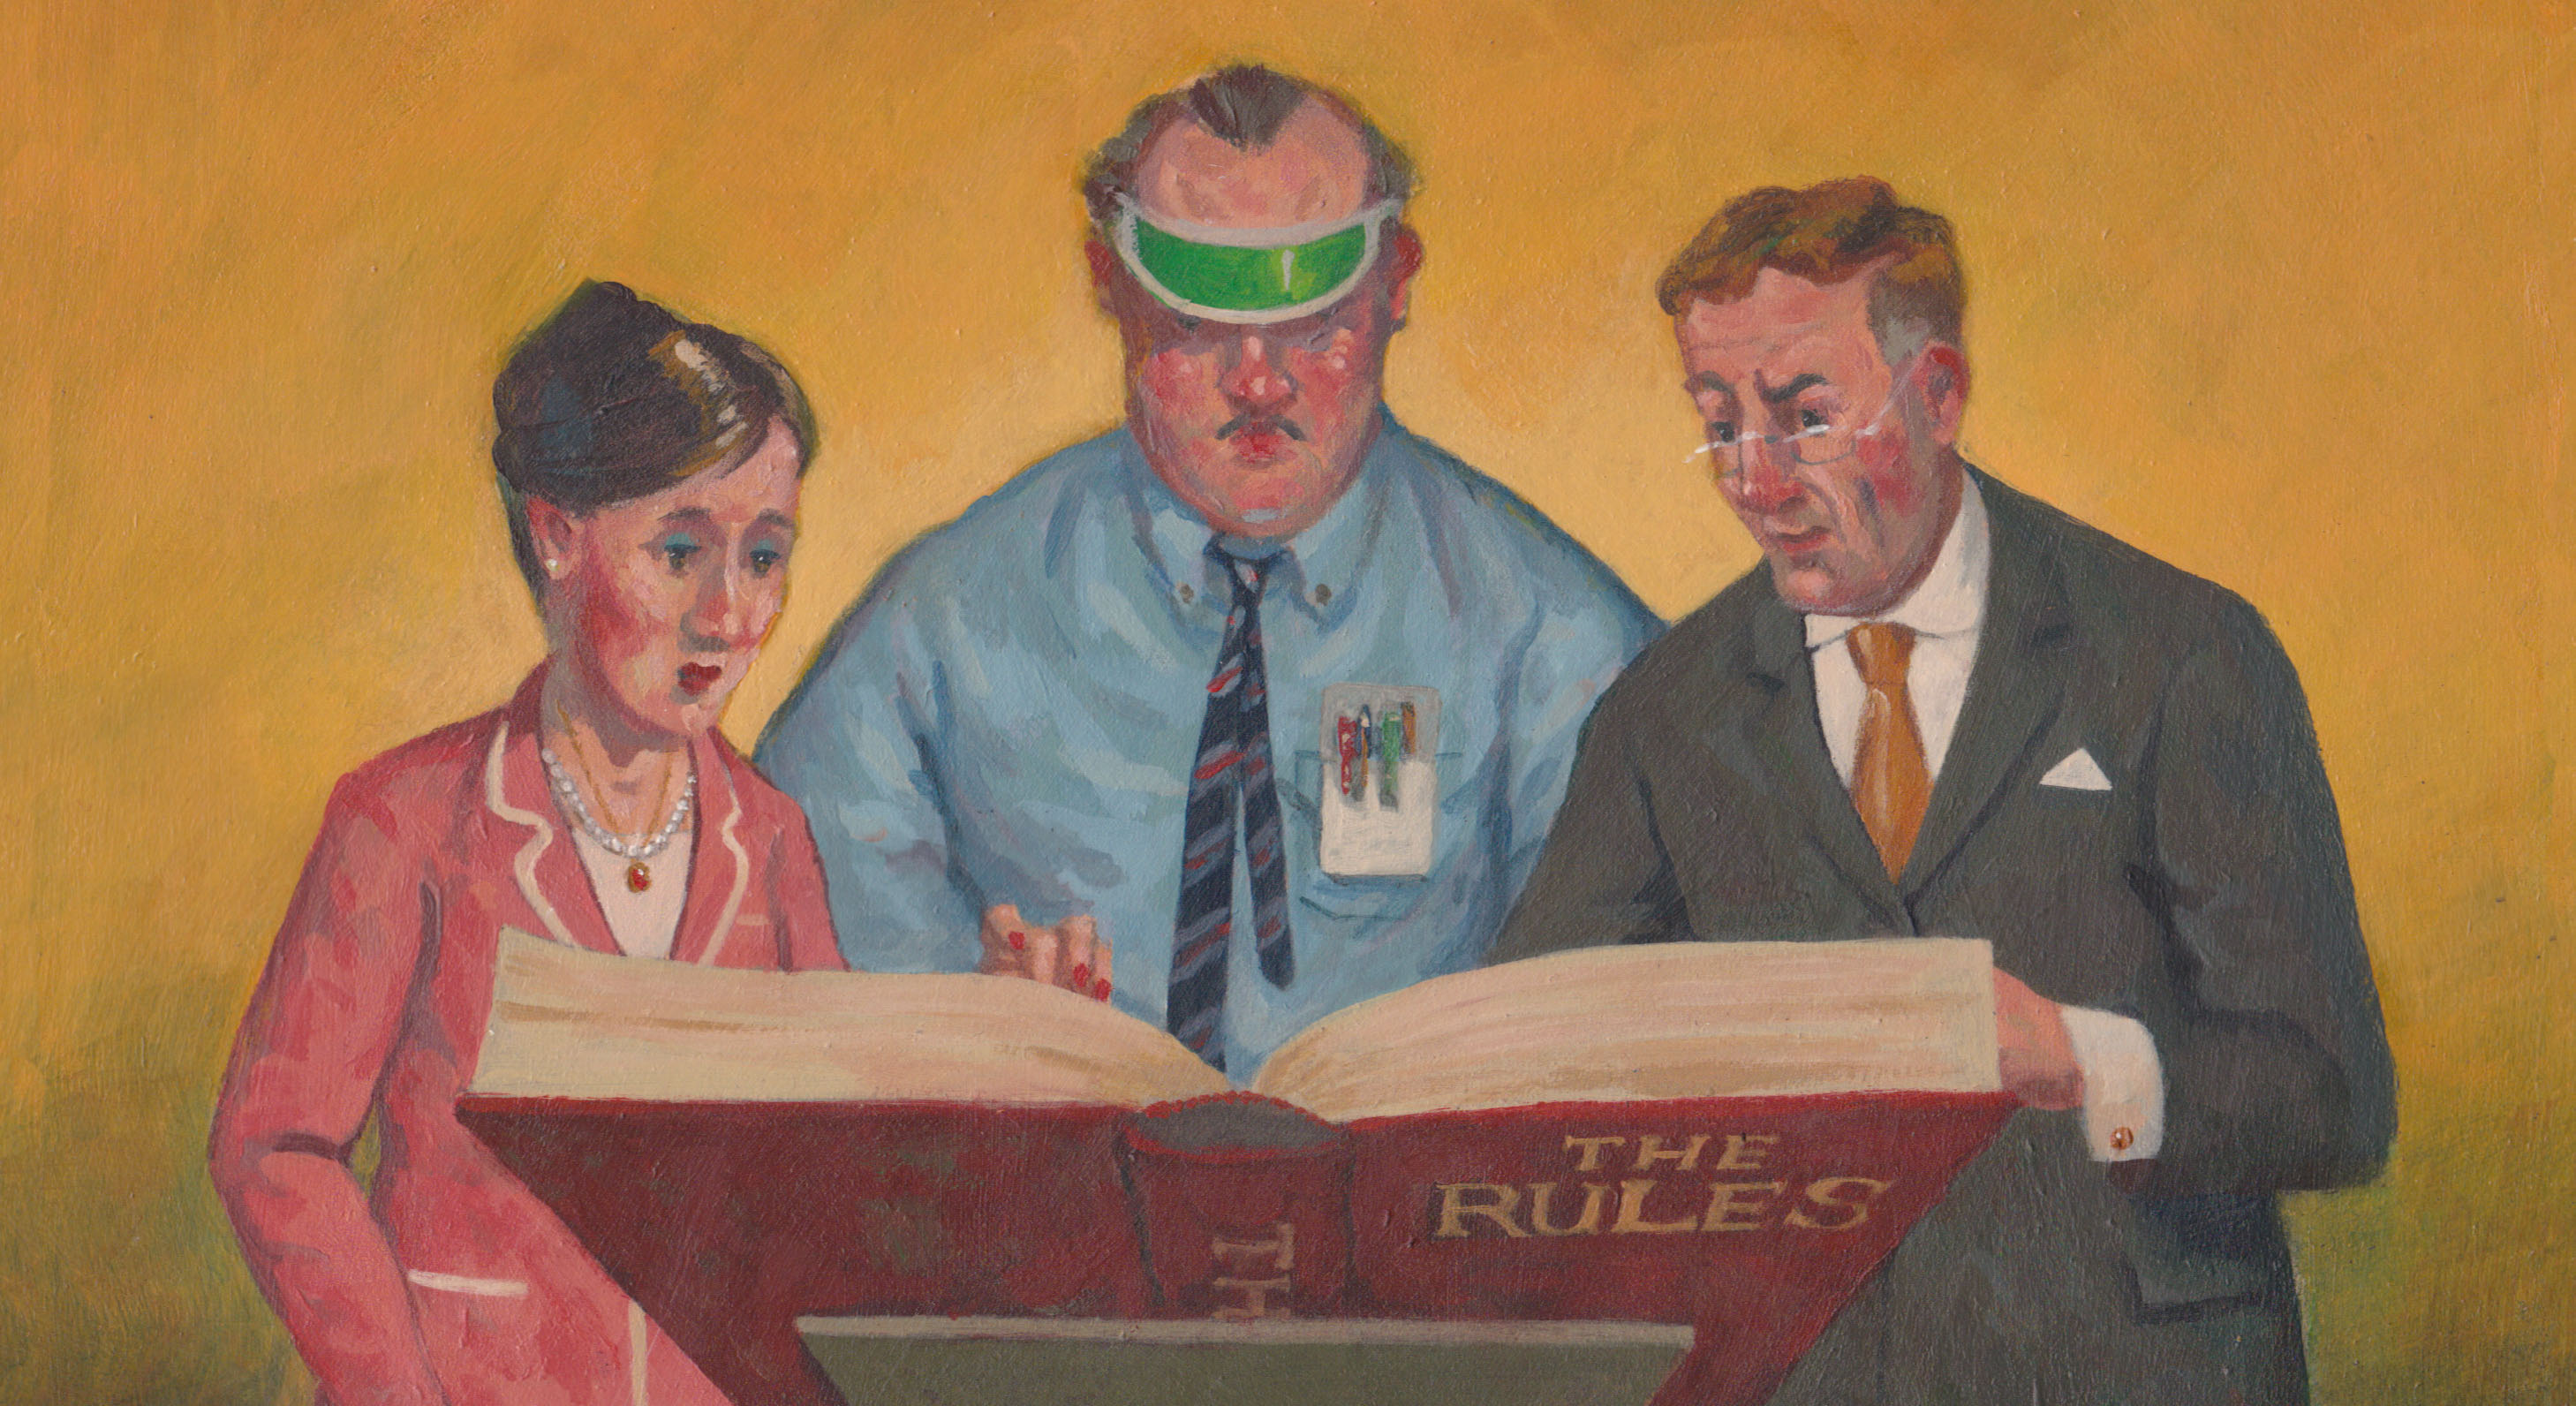 Illustration of 3 people reading from 'the rules' book